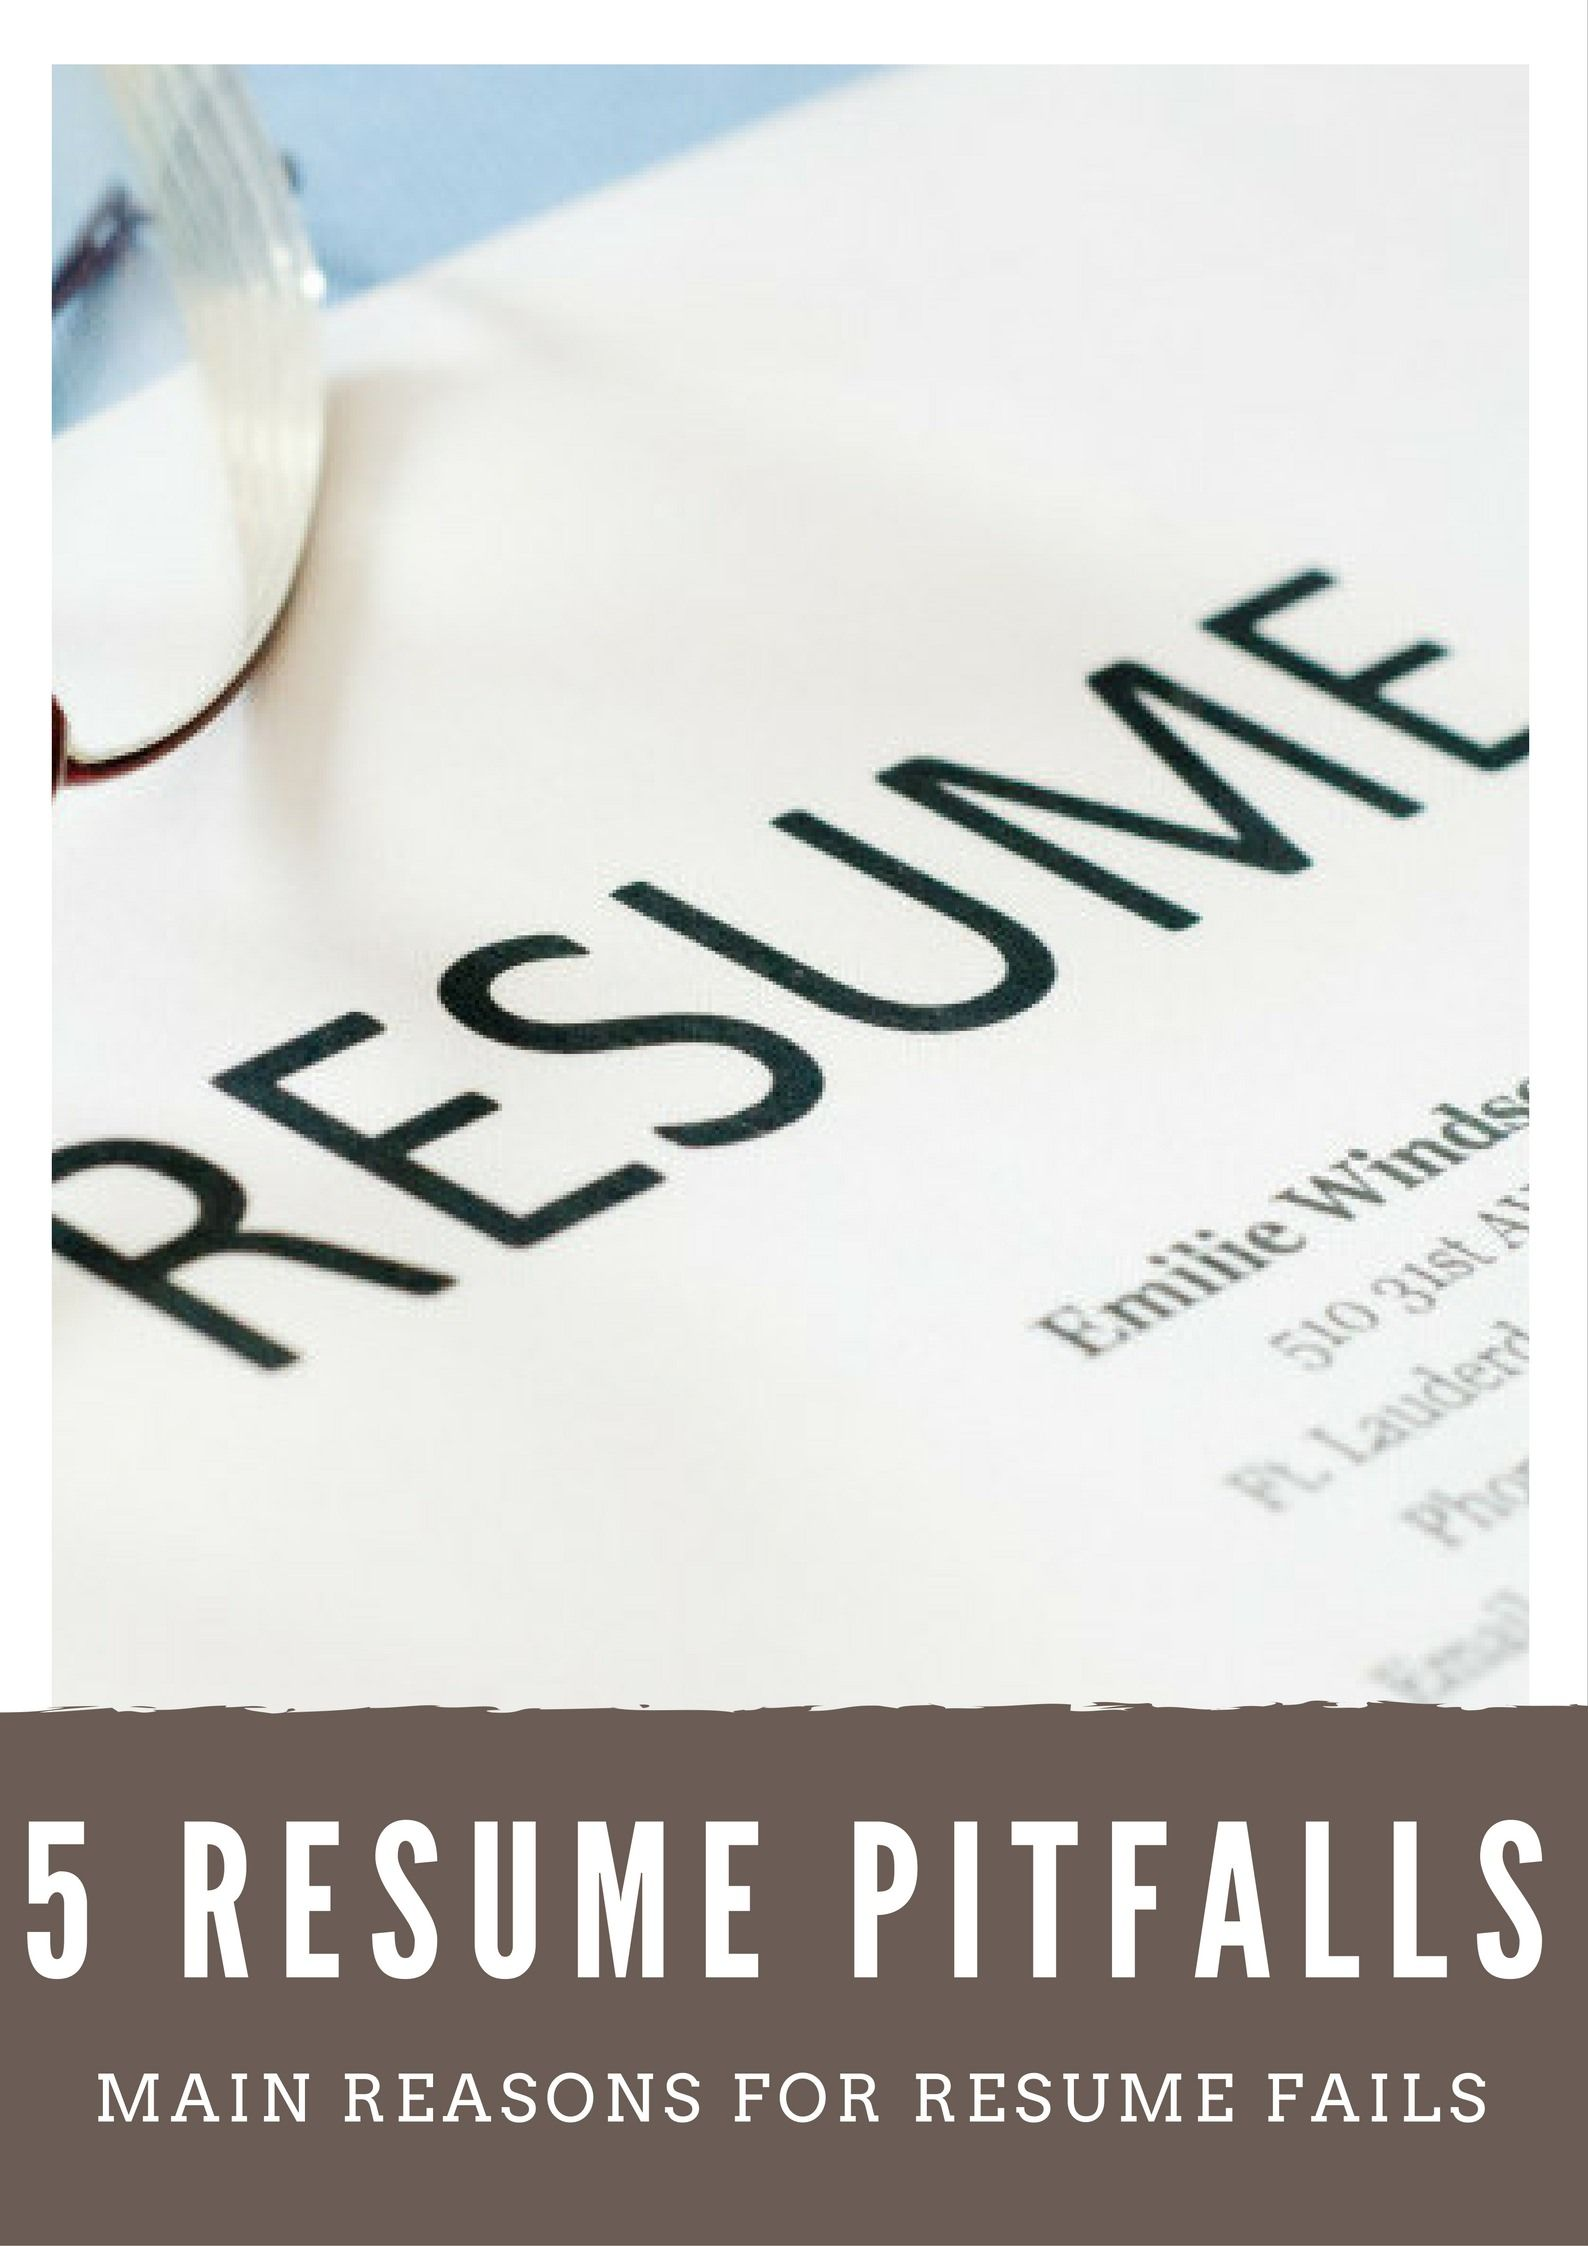 Resume Pitfalls 5 Things You Should Avoid Doing